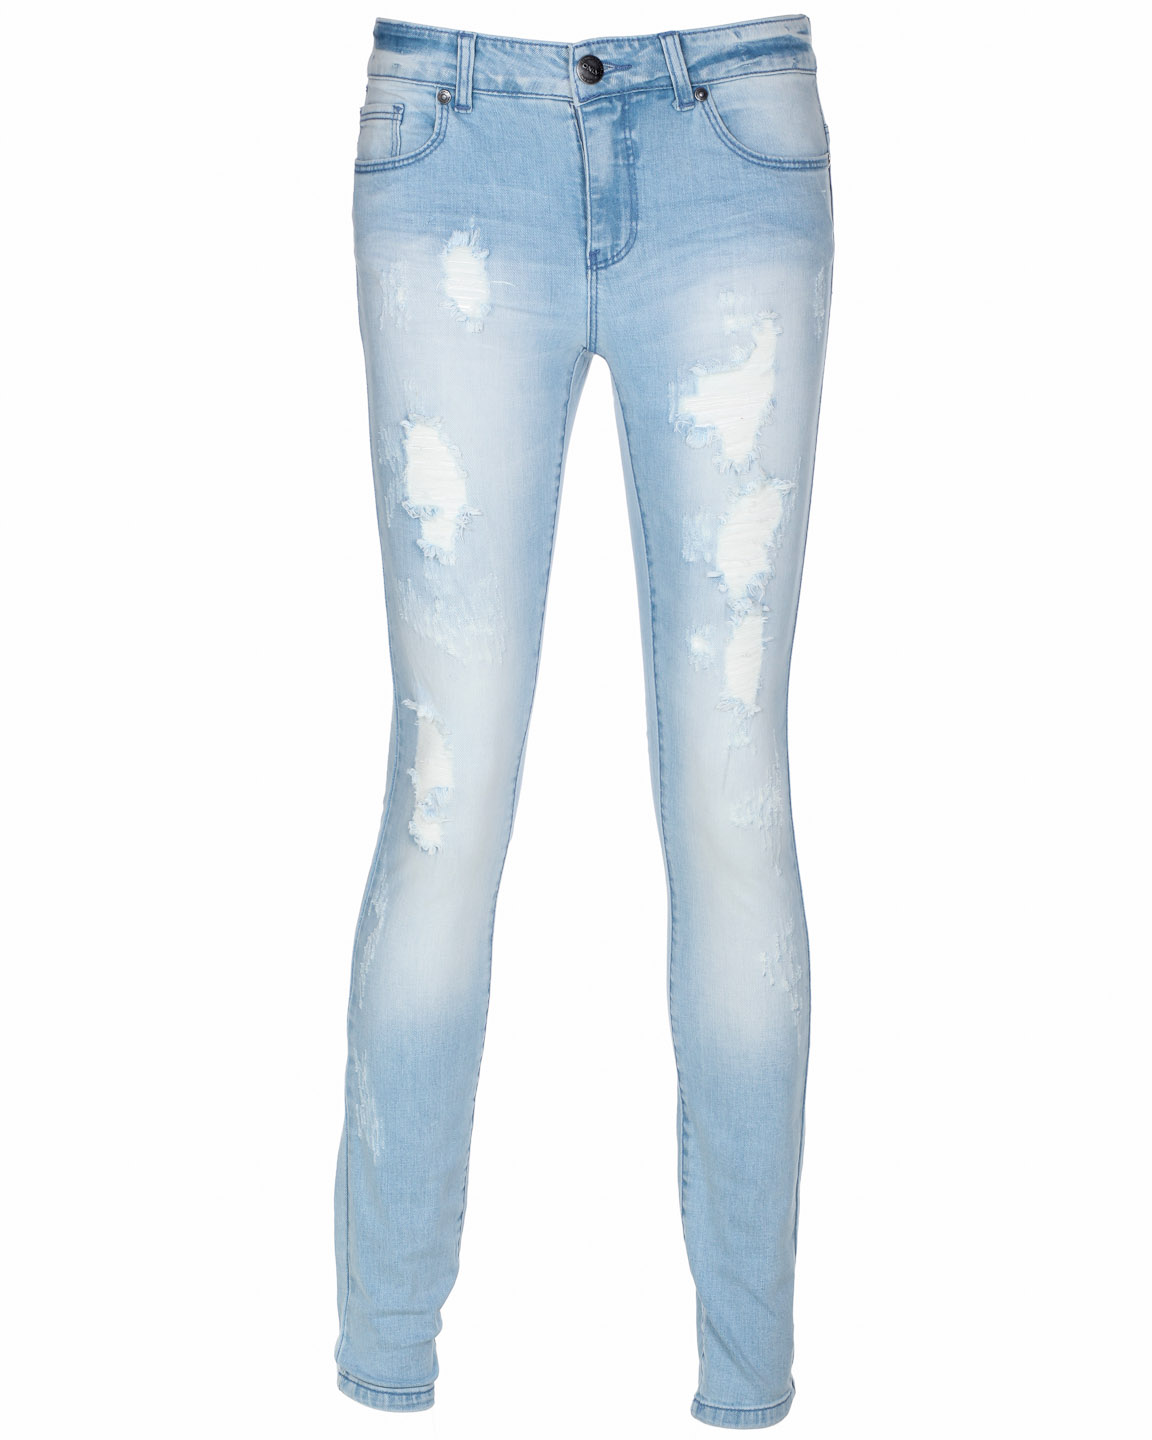 Womens Distressed Ripped Skinny Leg Fit Jeans Light Wash Blue | eBay